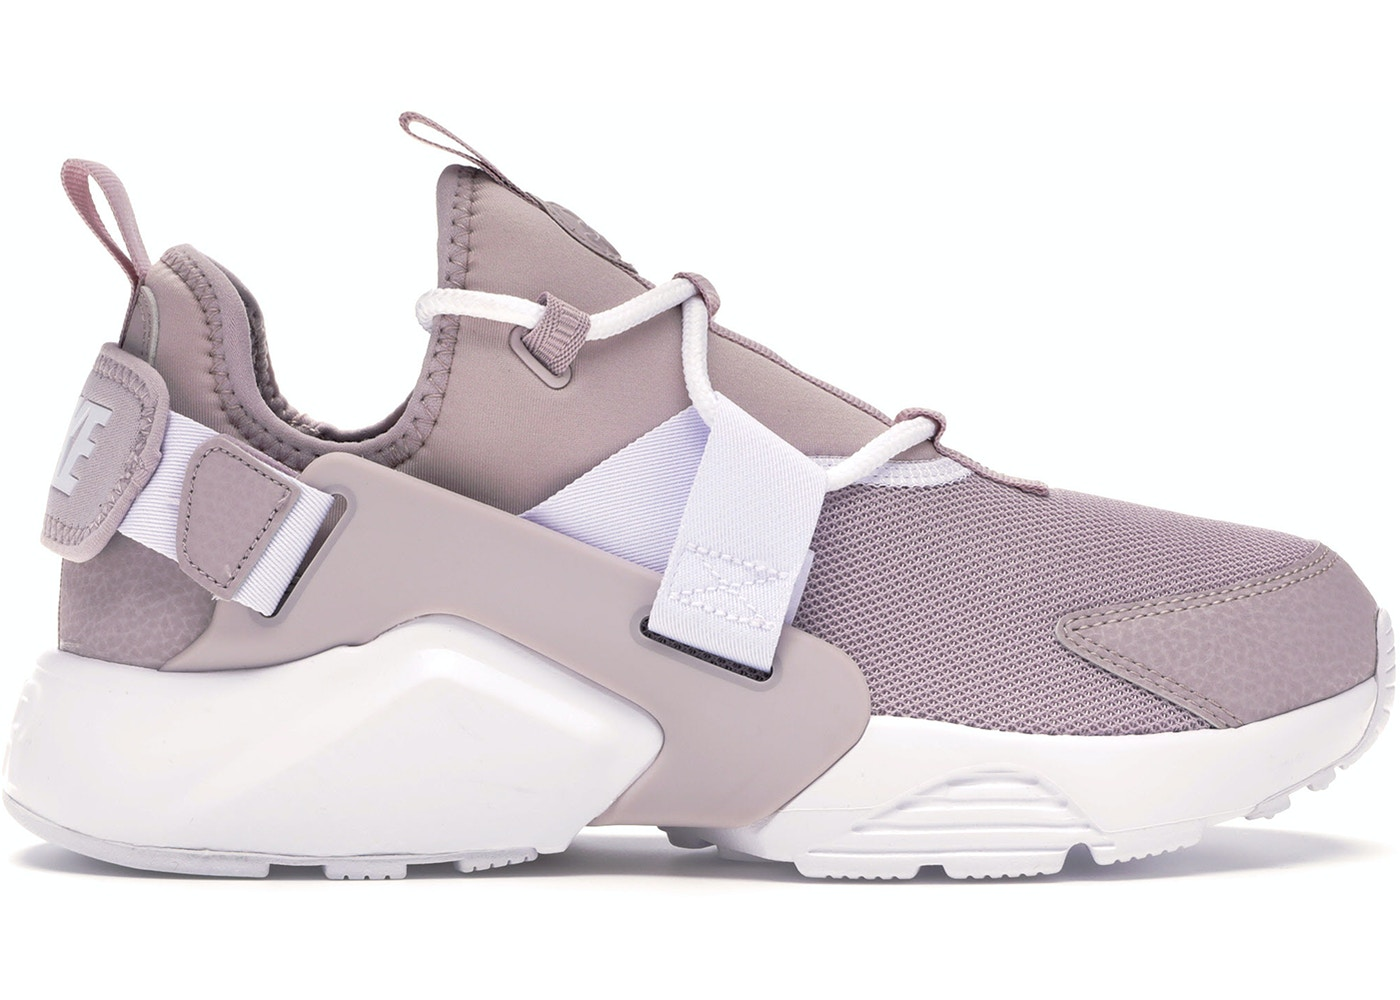 b06d1b311b904 Air Huarache City Low Particle Rose (W) - AH6804-600